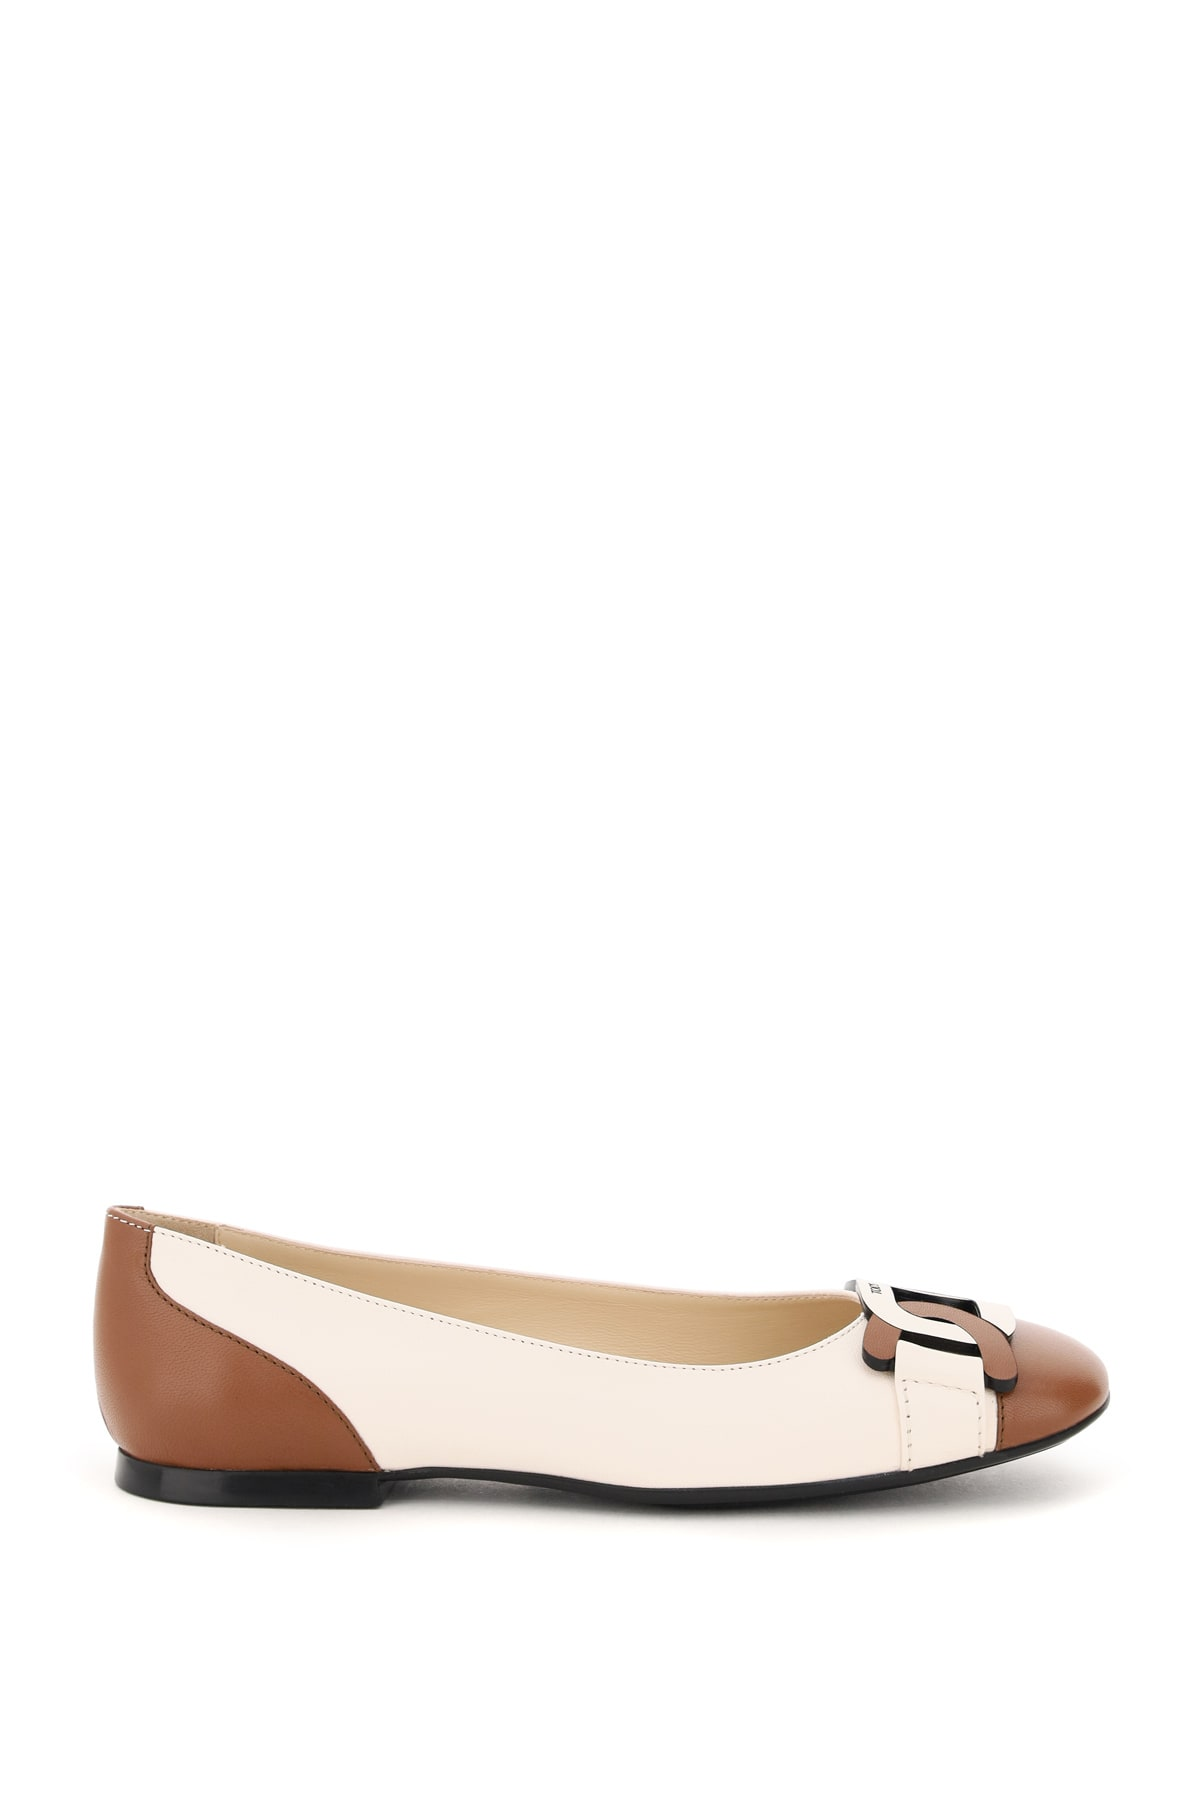 Tods Two-tone Ballet Flats Chain